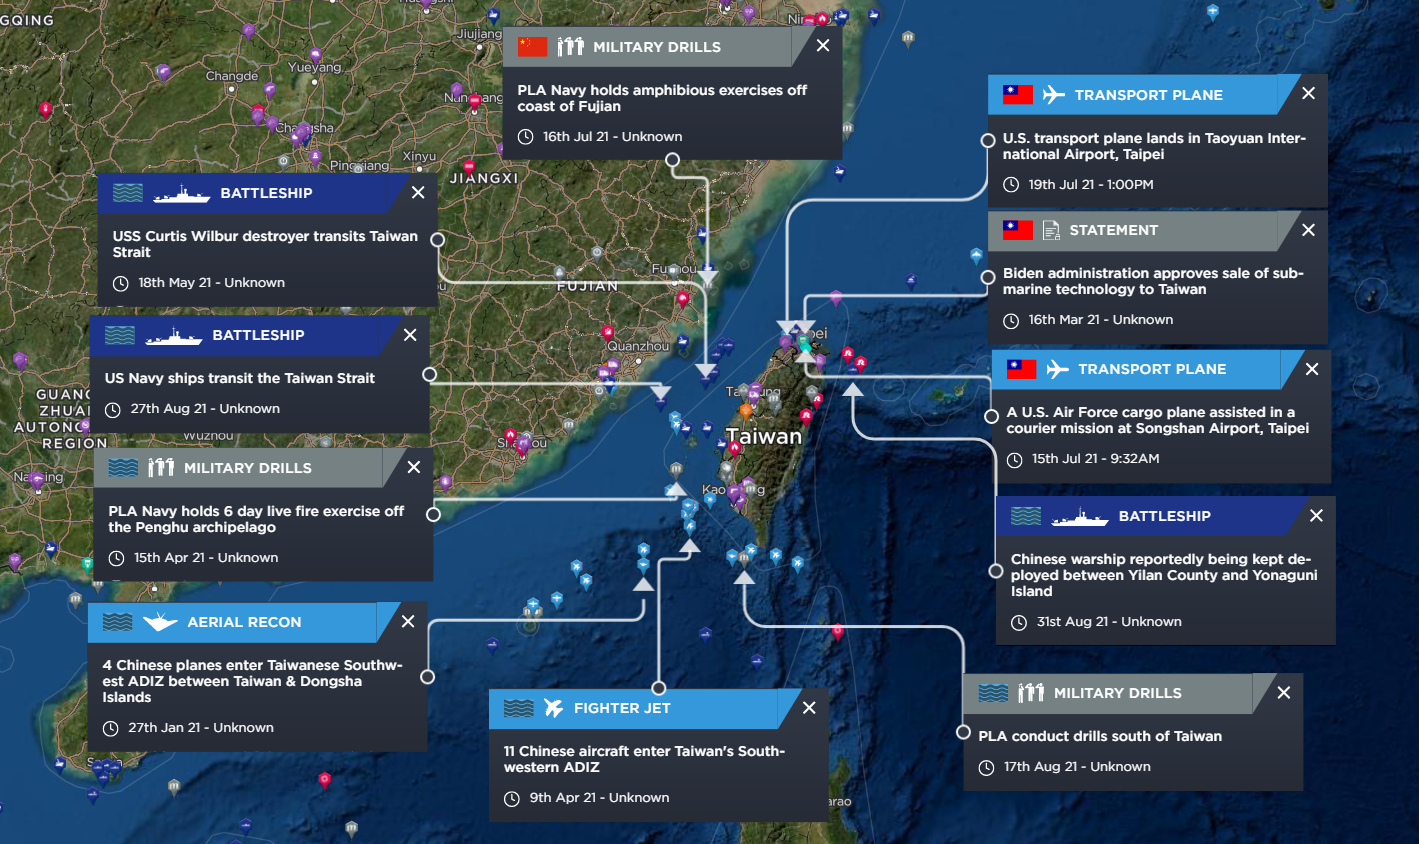 Map highlighting security alerts for the Taiwan Strait